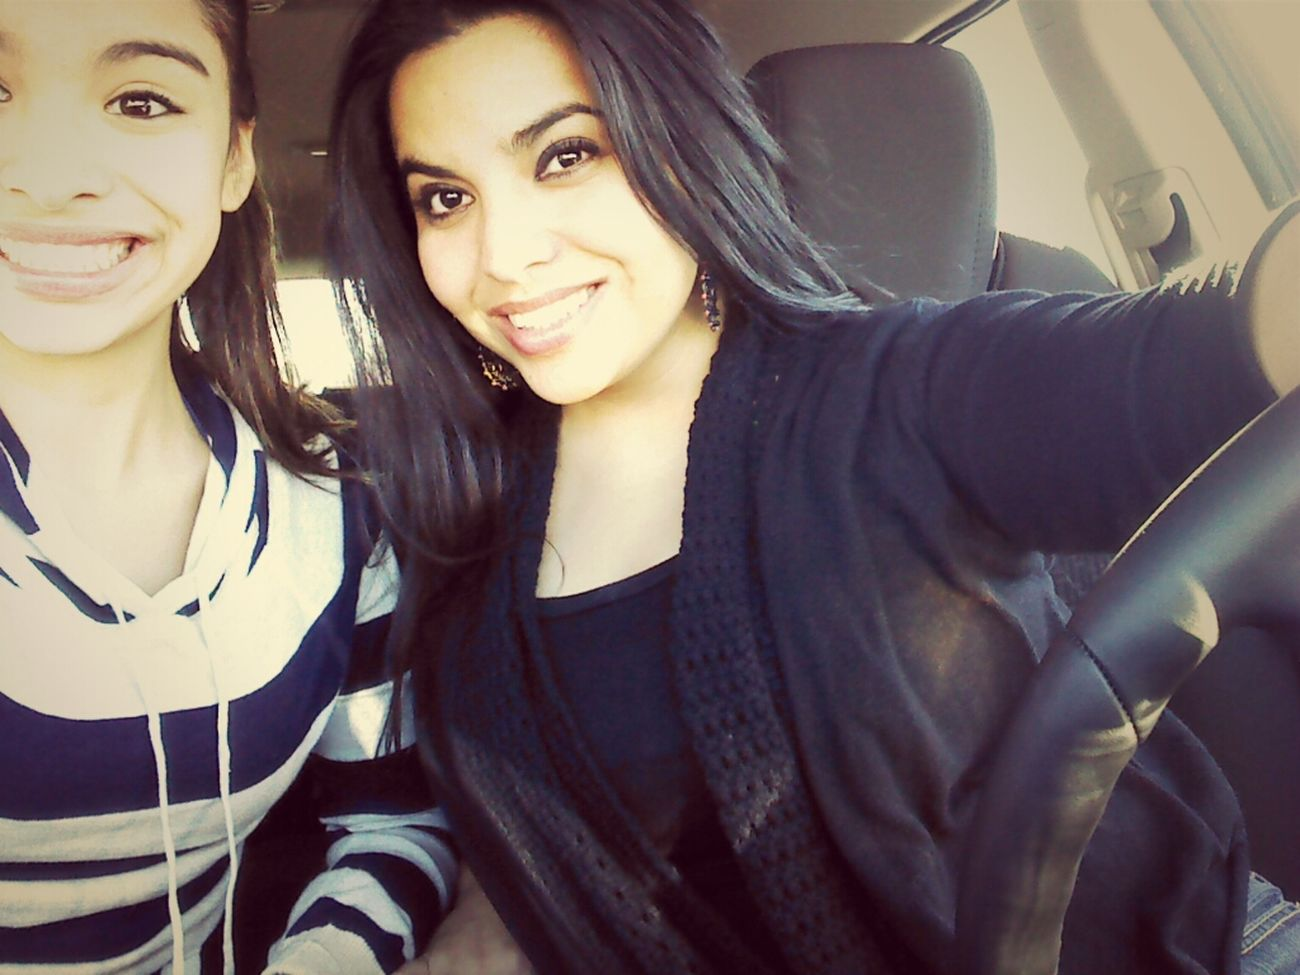 With The Mom! (':